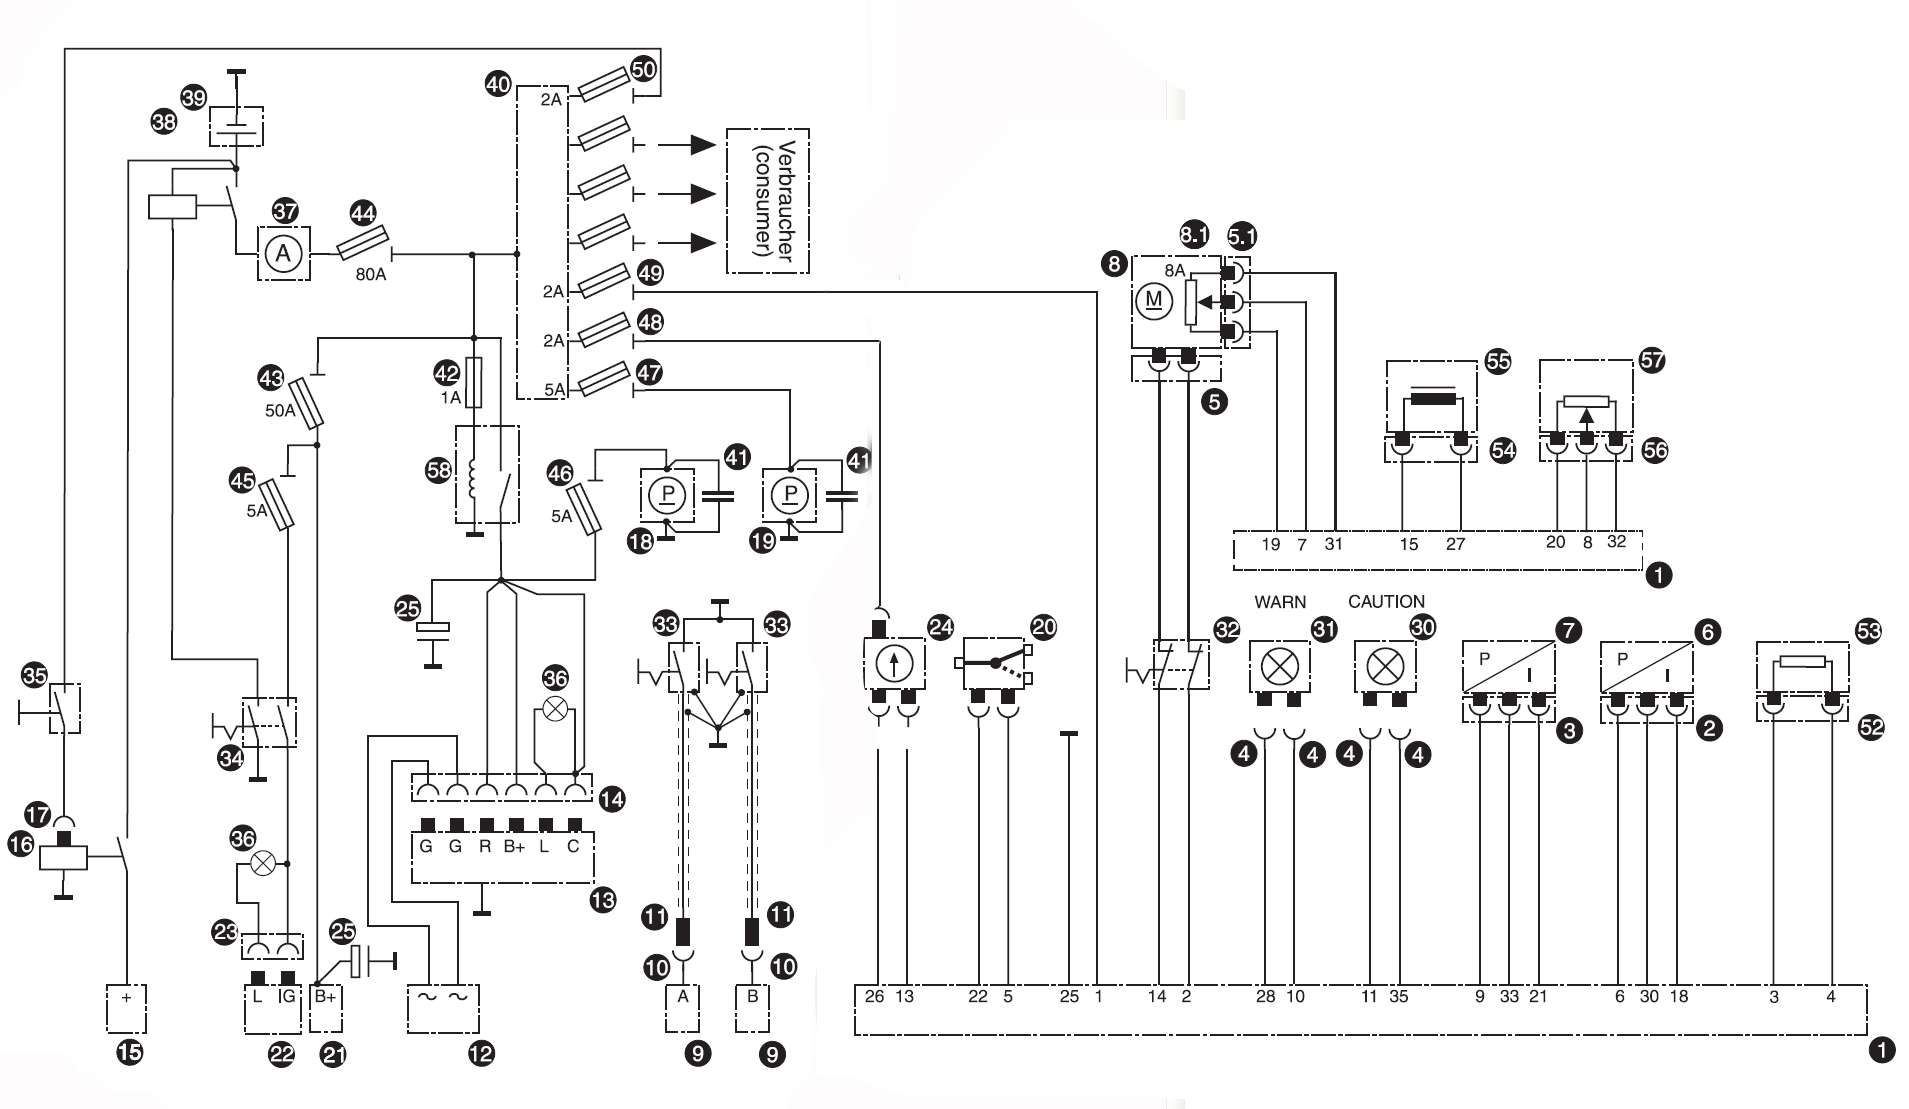 hight resolution of rotax wiring diagram wiring diagram mega rotax 912 ignition module wiring diagram rotax 447 wiring diagram